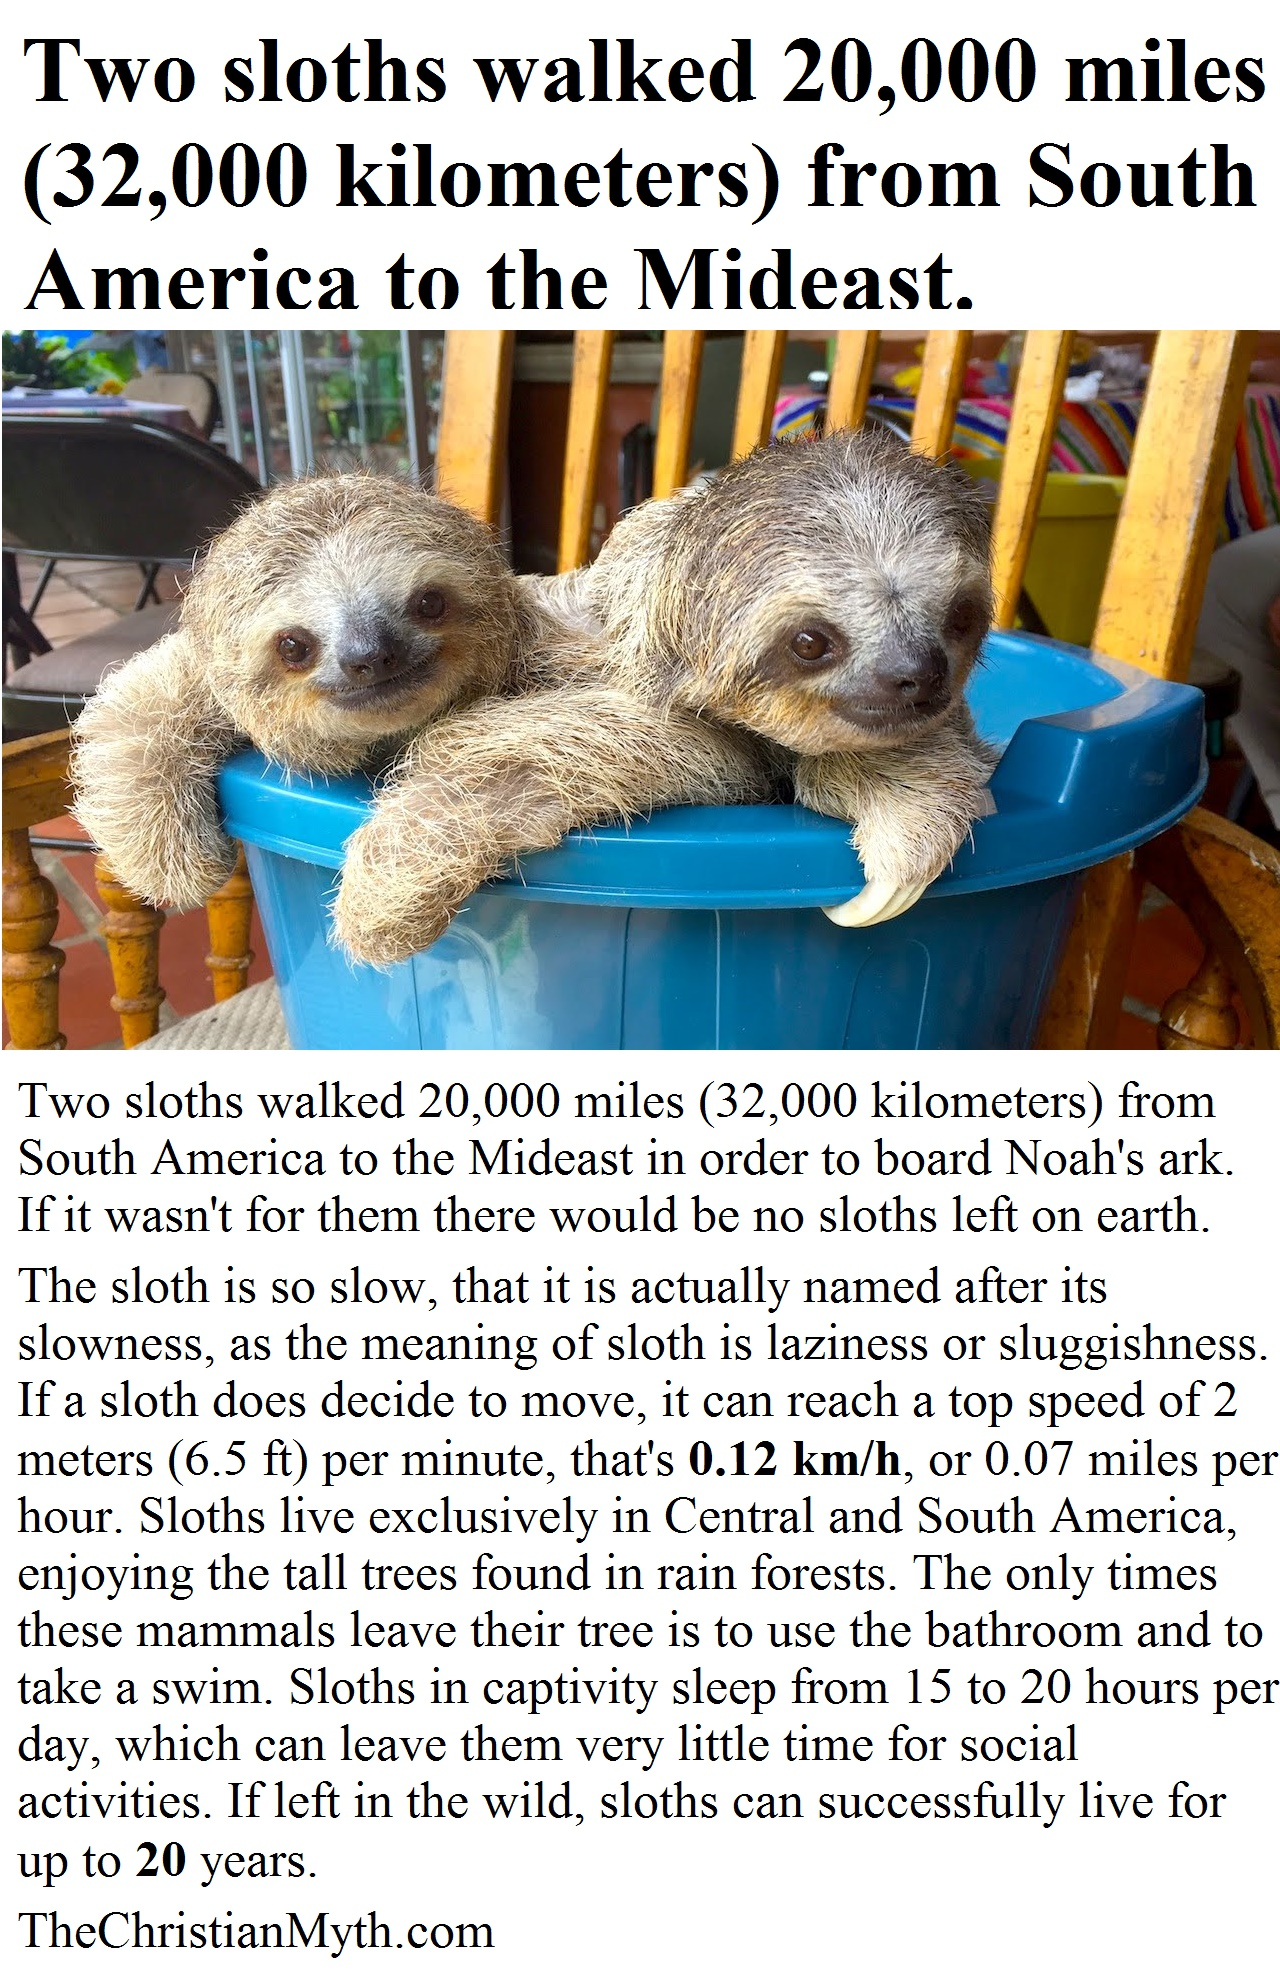 Two sloths walked 20,000 miles (32,000 kilometers) from South America to the Mideast.